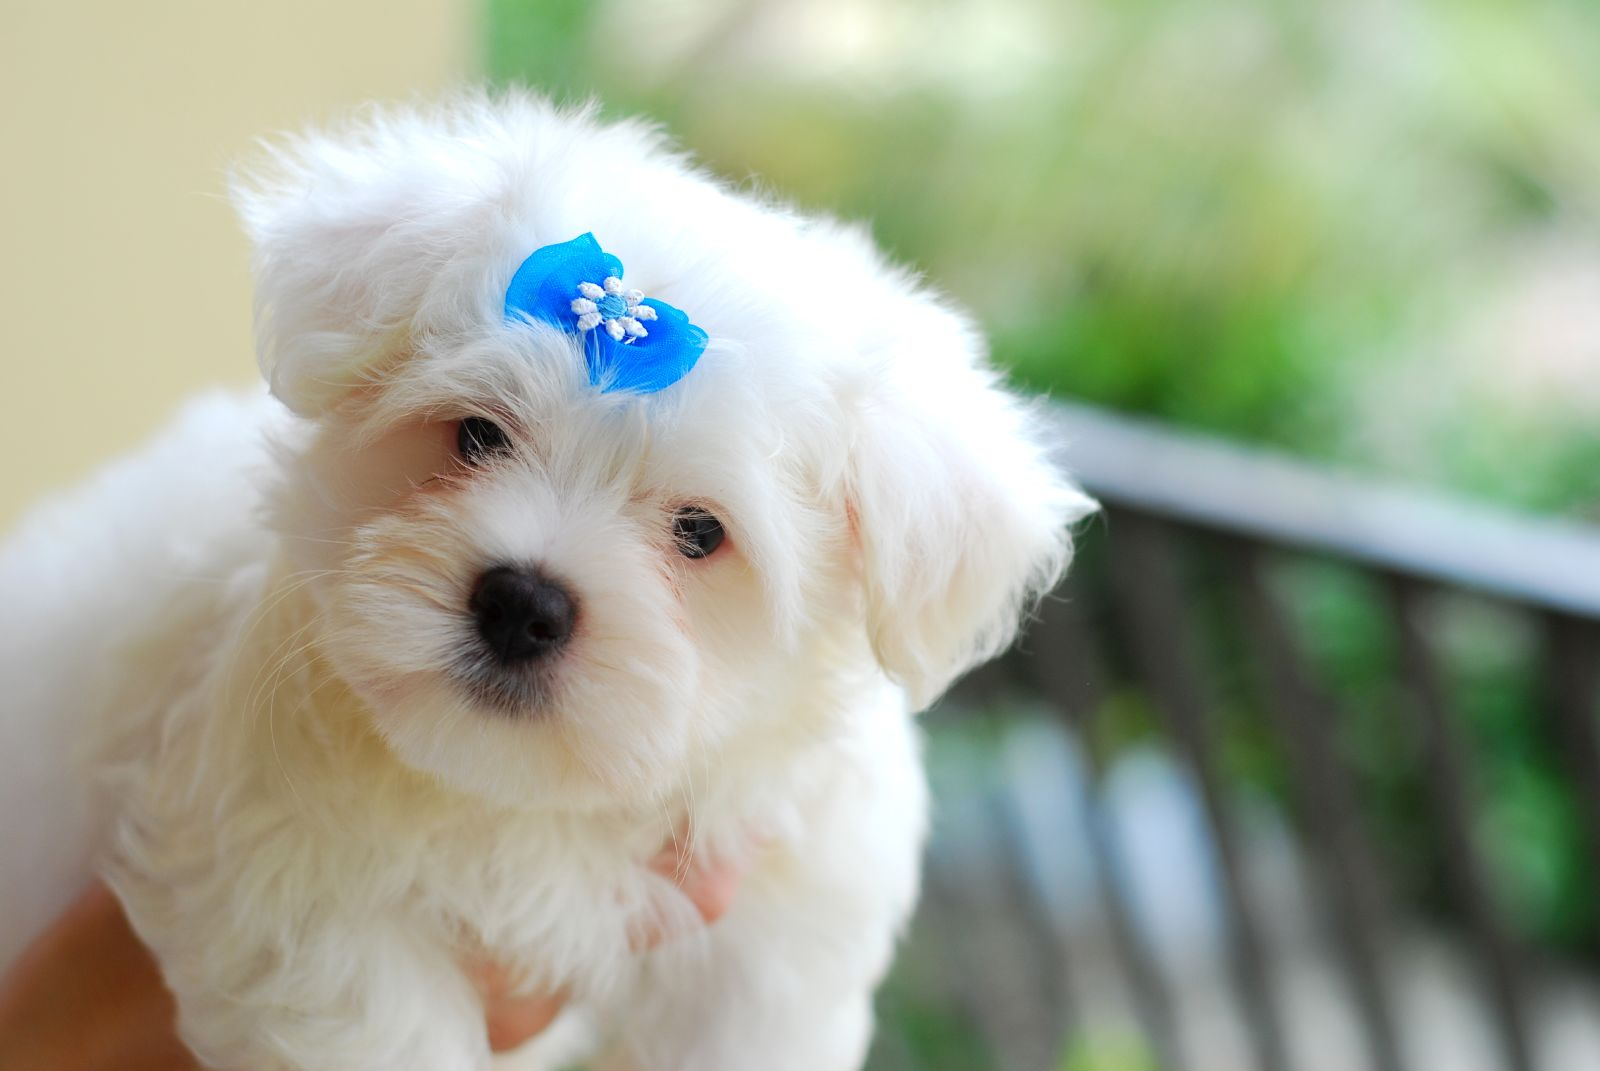 Wonderful Wallpaper Bow Adorable Dog - maltese-dog-with-a-blue-bow-photo  Picture_707596  .jpg